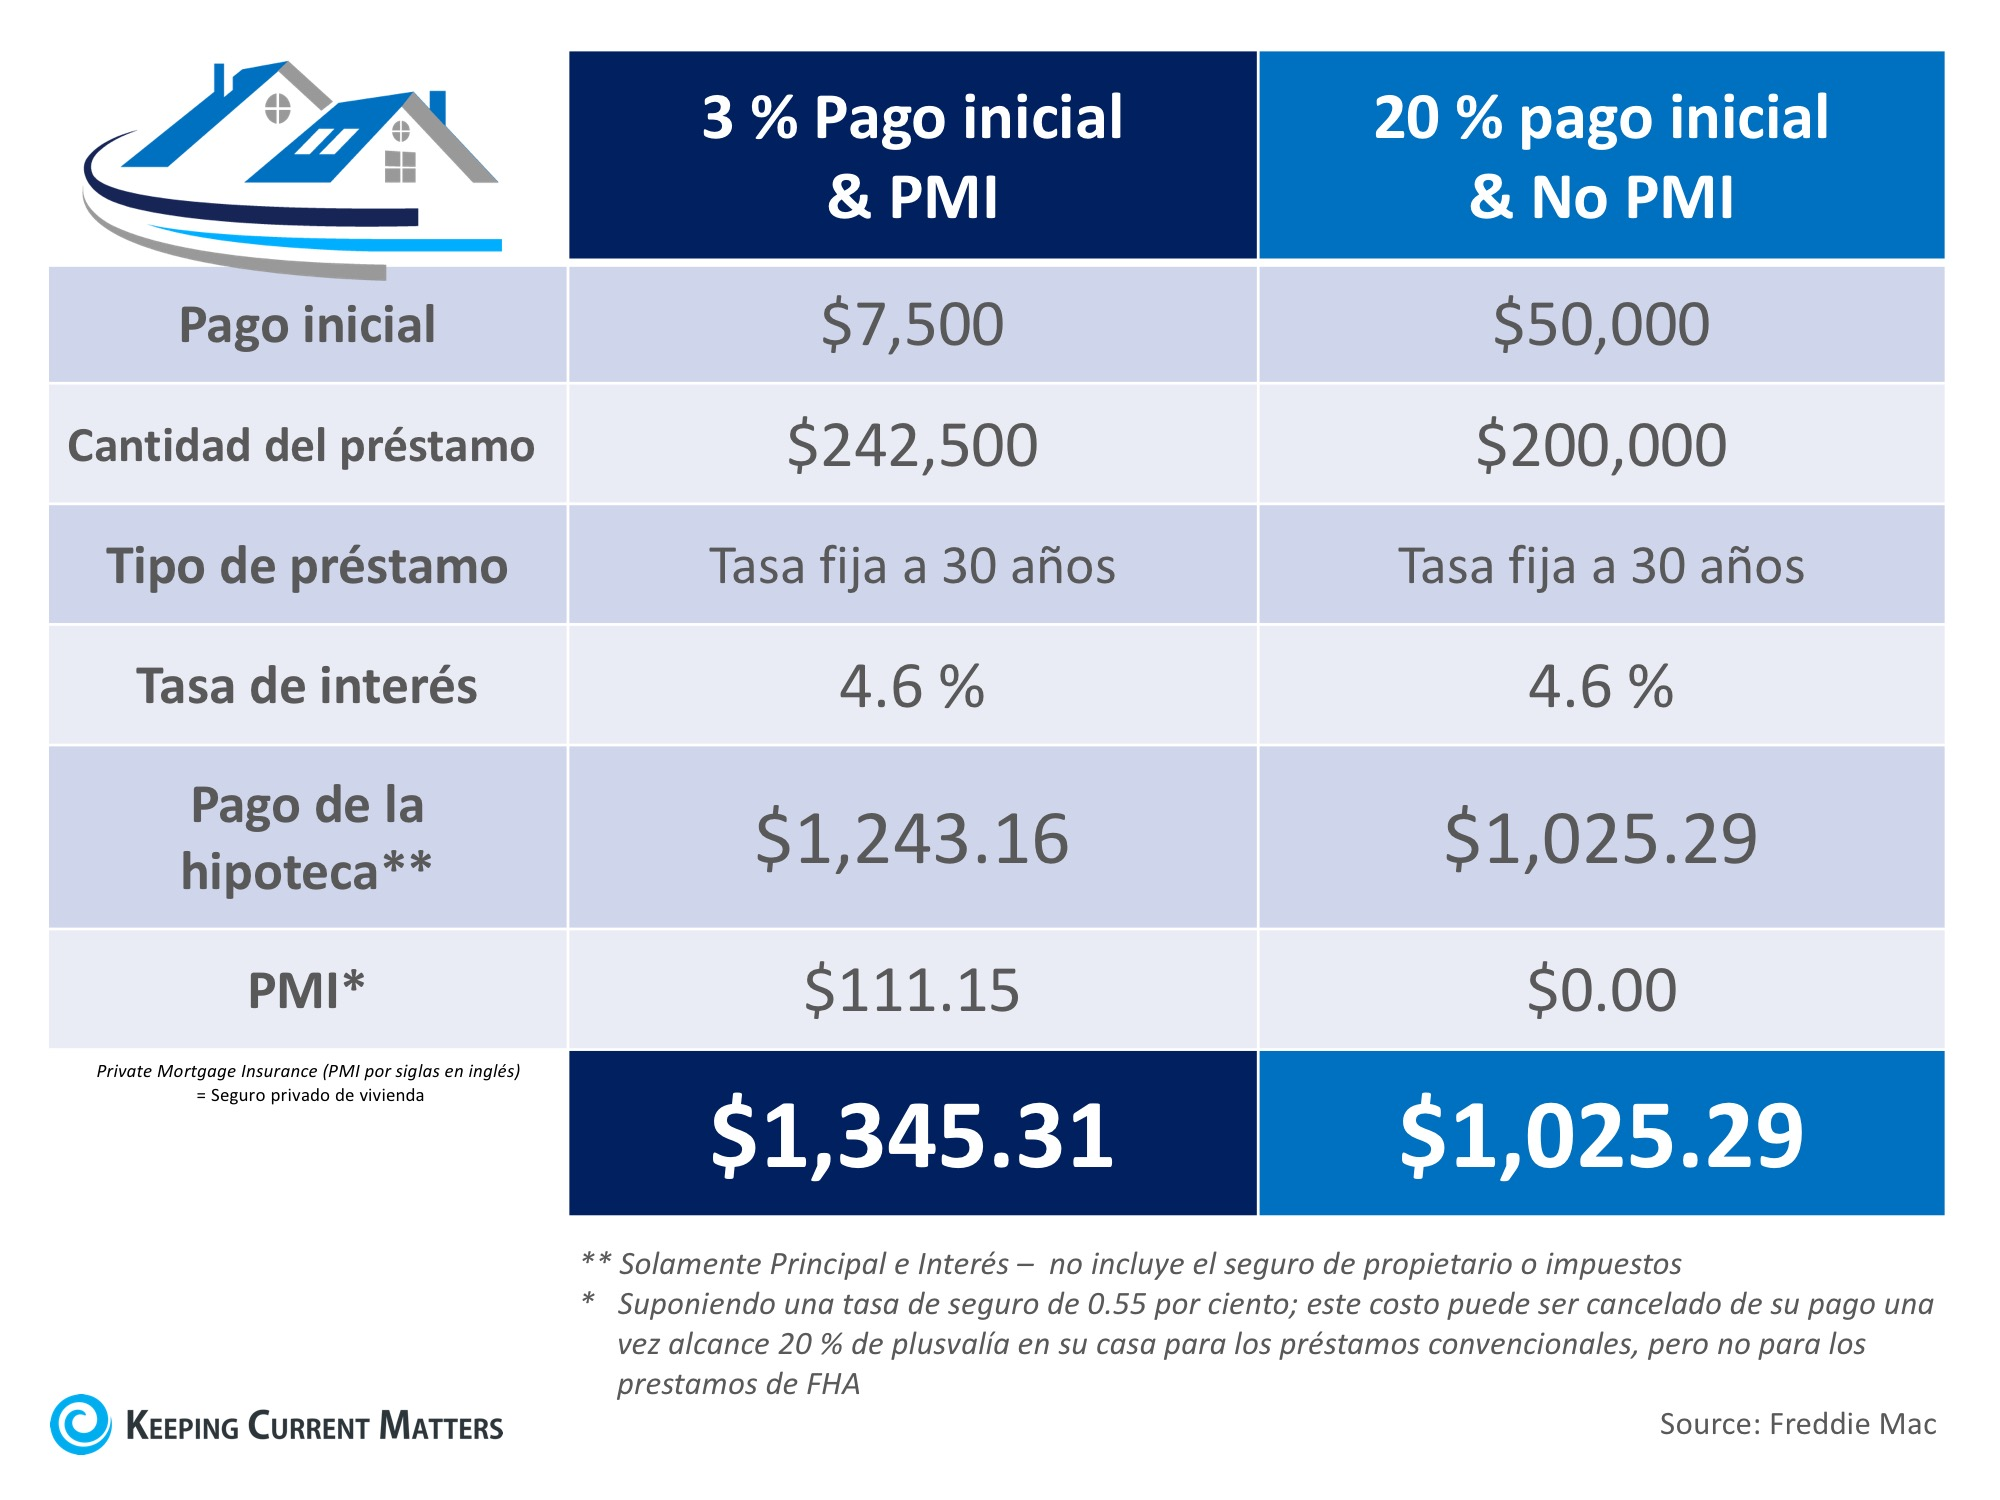 El costo de no pagar PMI | Keeping Current Matters